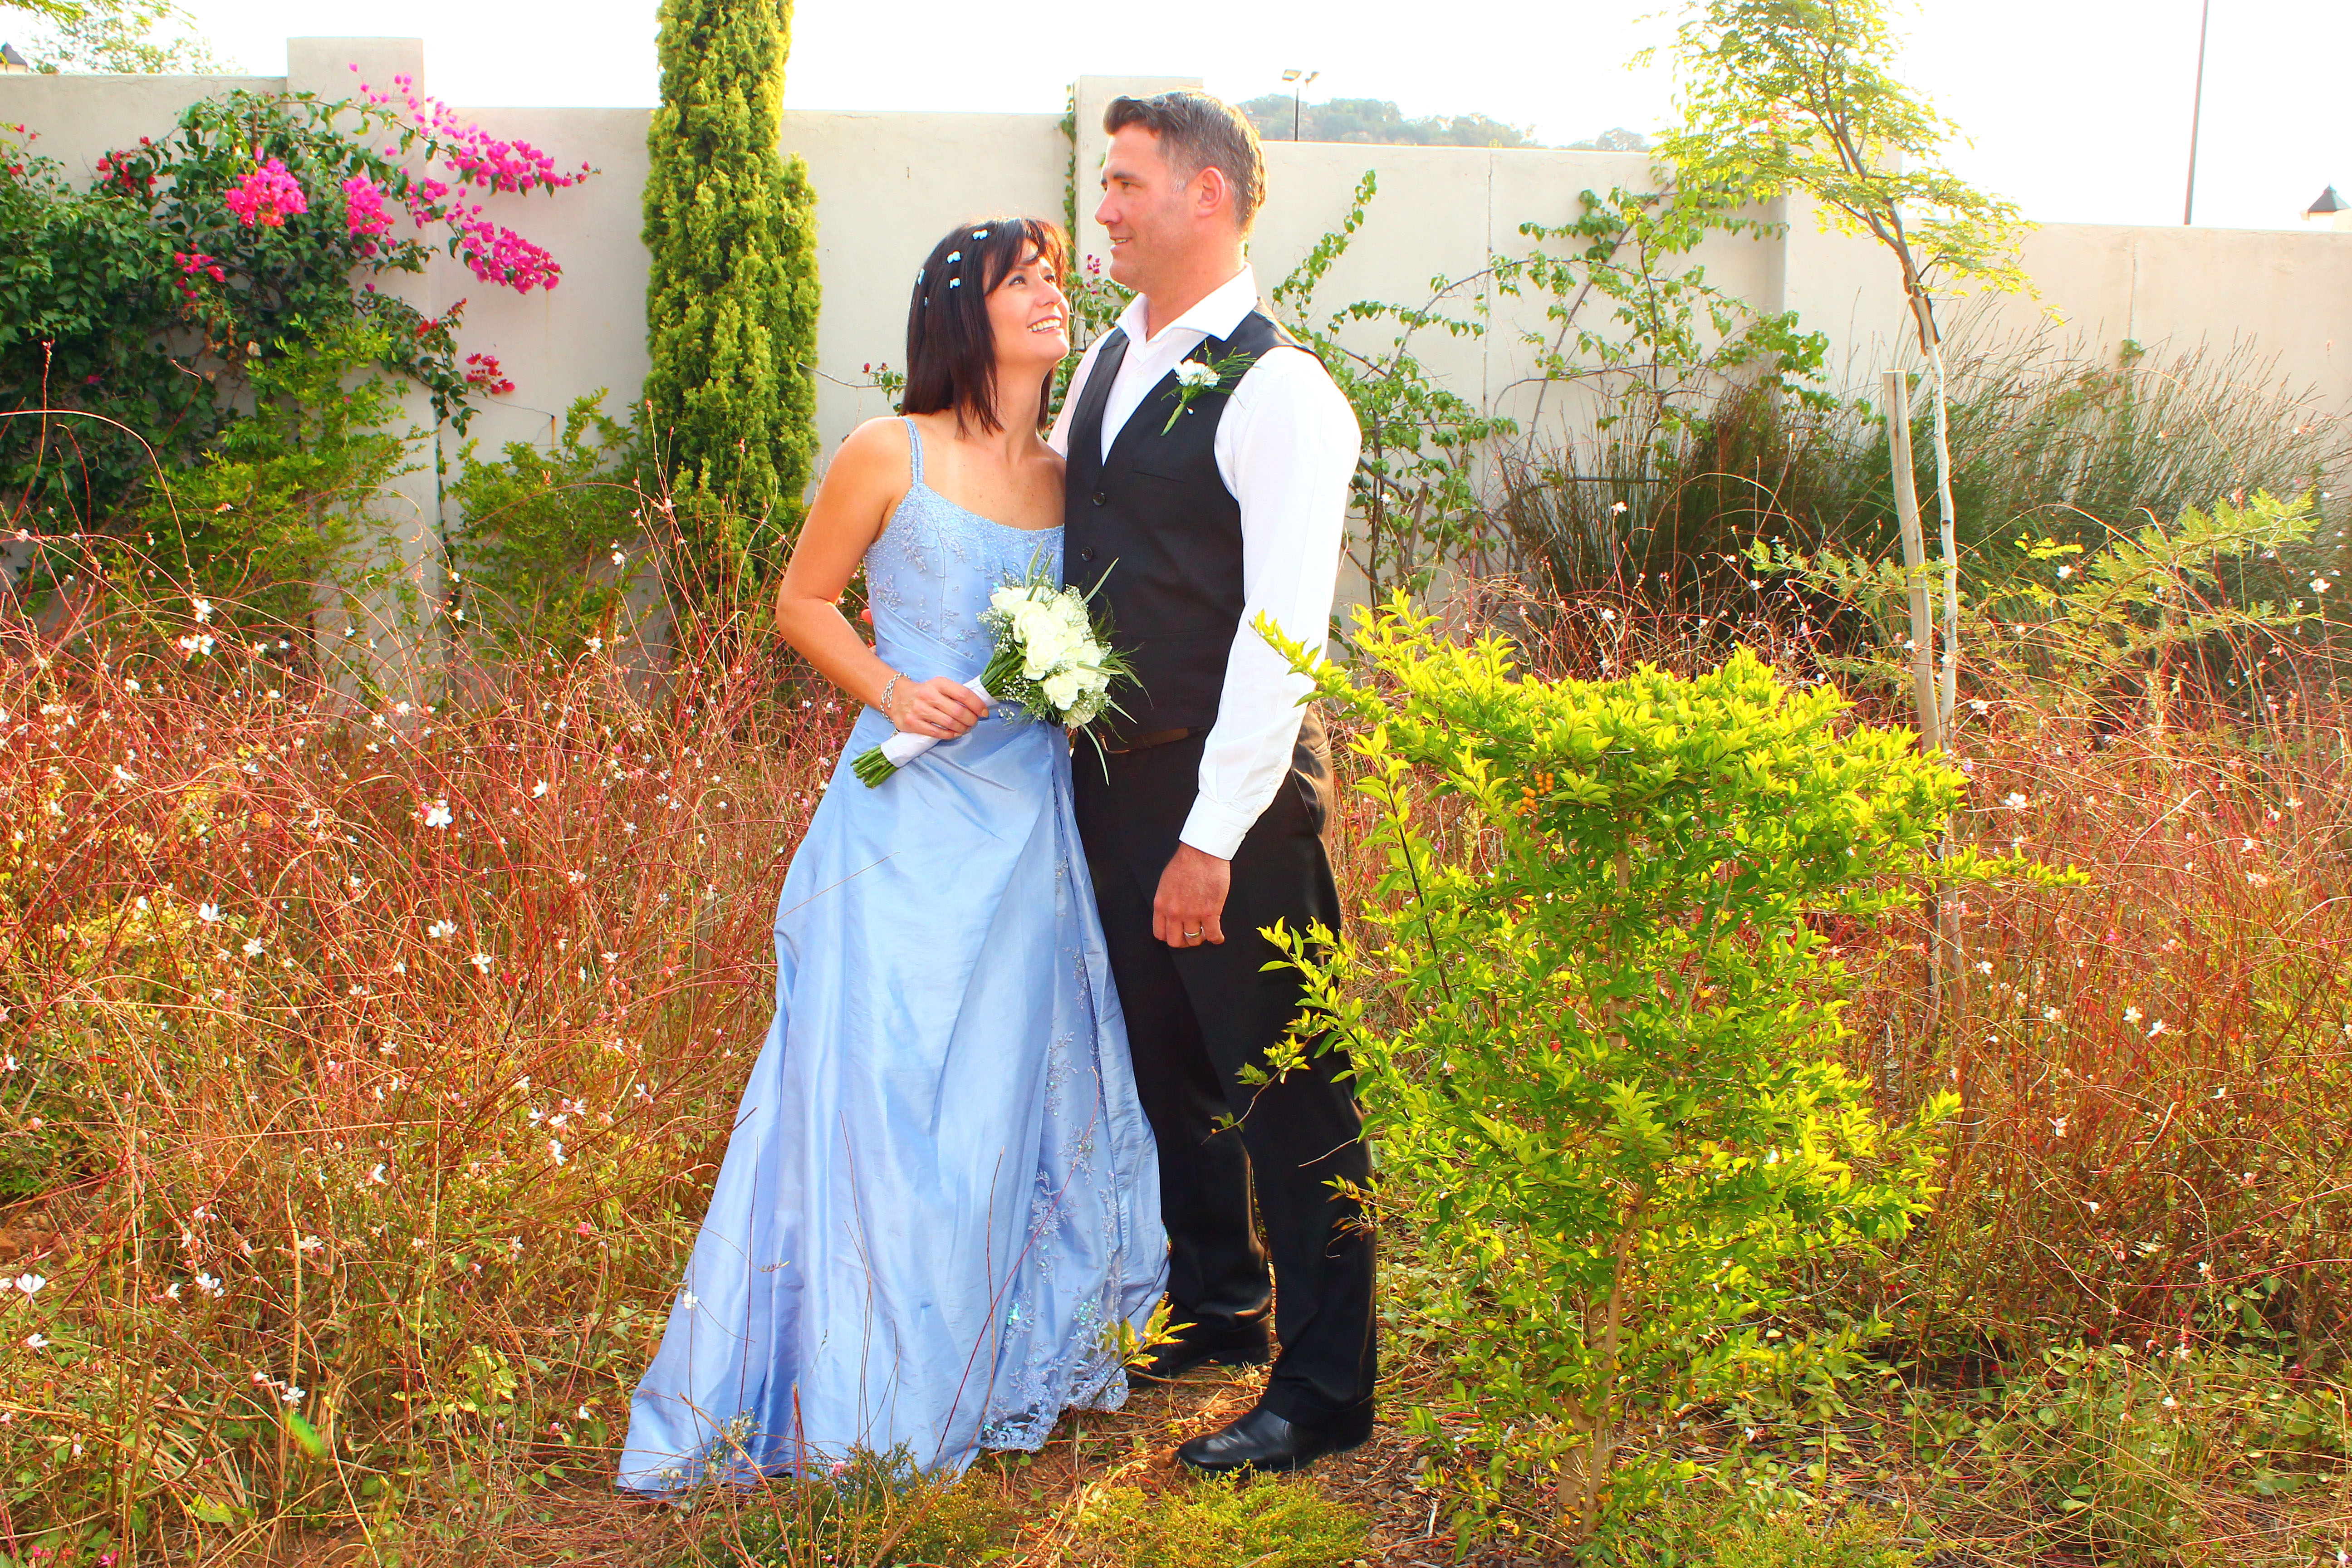 Natural Wedding Photography | Photoshoots Pretoria